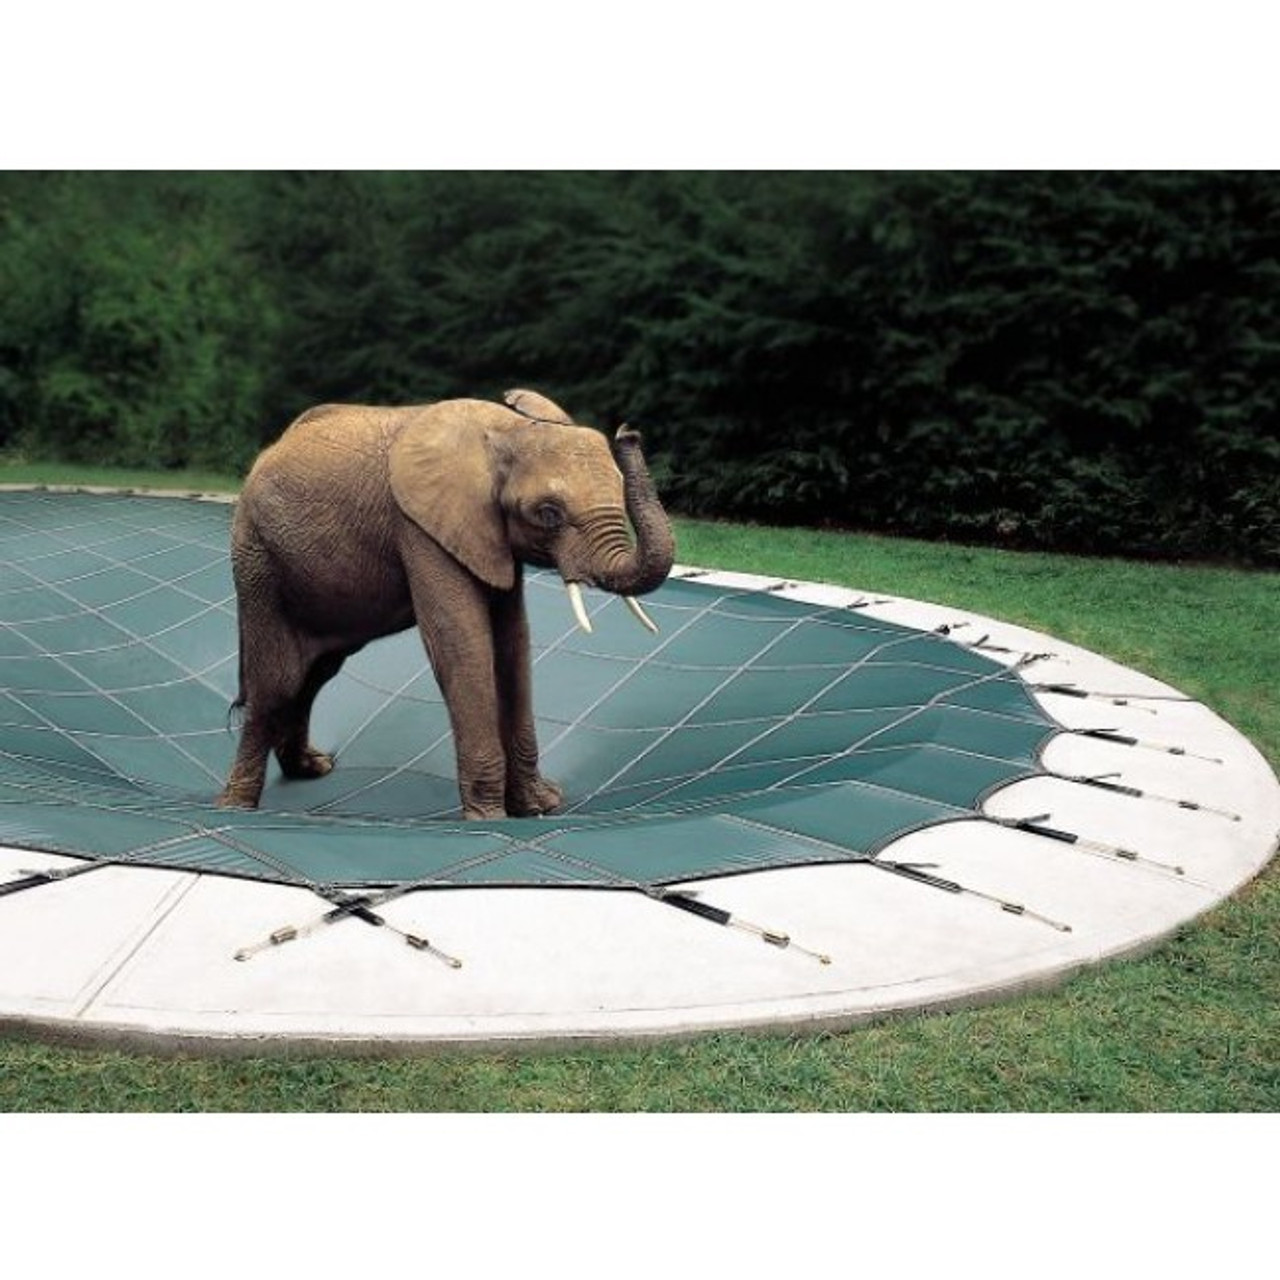 12' x 12' Square Loop-Loc II Super Dense Mesh In-Ground Pool Safety Cover